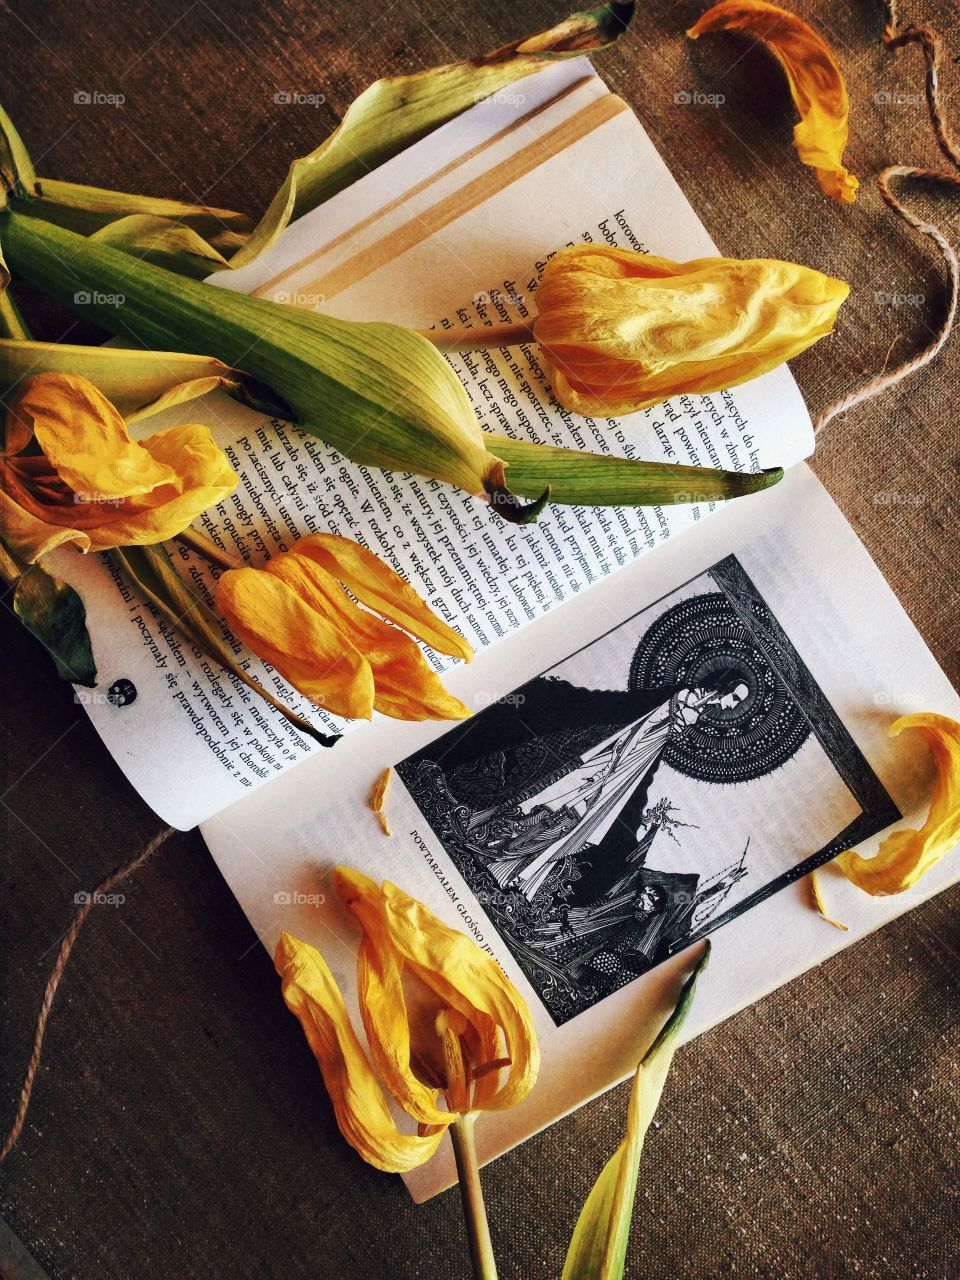 Tulips . Tulips on the book